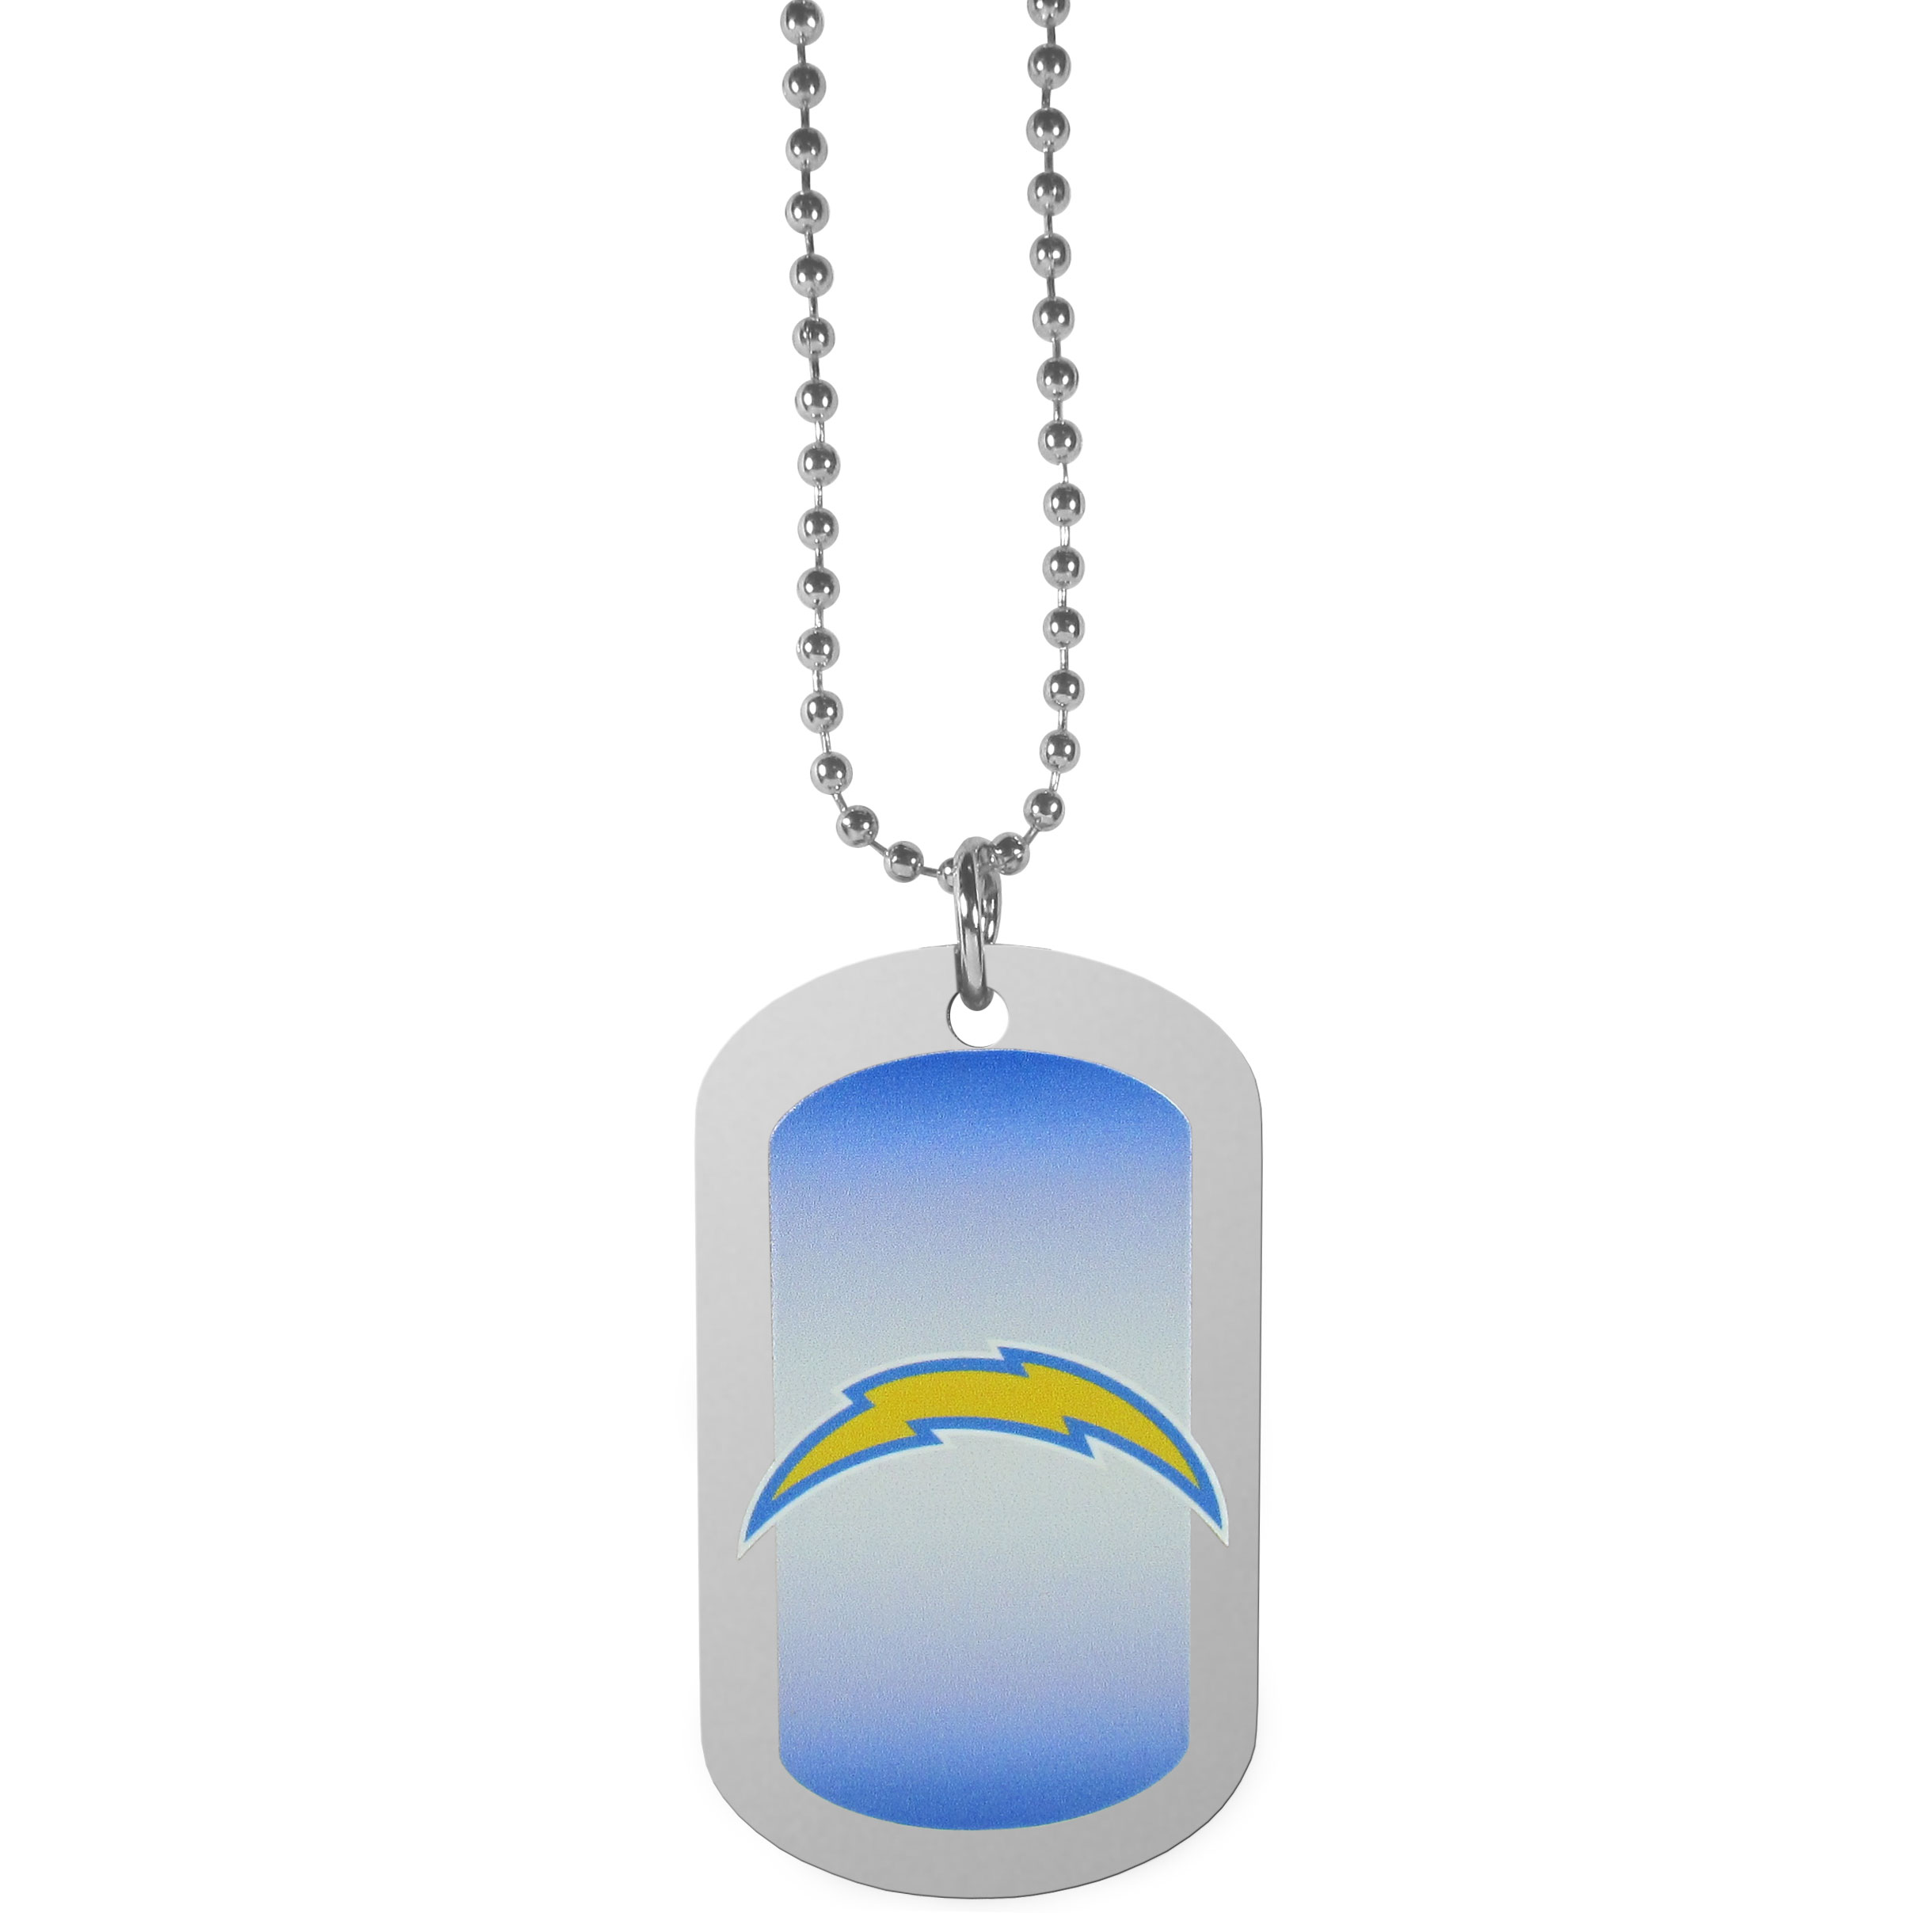 Los Angeles Chargers Team Tag Necklace - Dog tag necklaces are a fashion statement that is here to stay. The sporty version of the classic tag features a gradient print in team colors featuring a full color team logo over a high polish tag to create a bold and sporty look. The tag comes on a 26 inch ball chain with a ball and joint clasp. Any Los Angeles Chargers would be proud to wear this attractive fashion accessory.